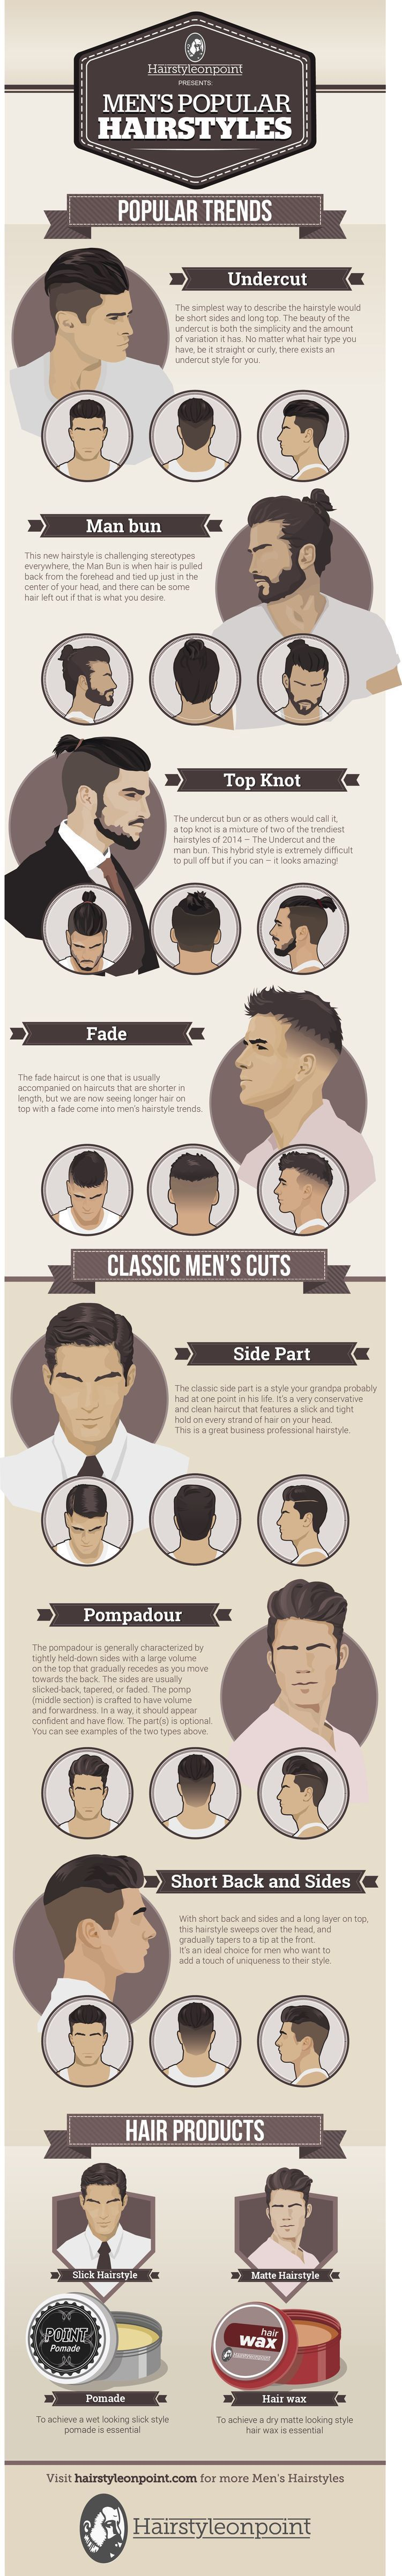 Mens haircut how to the coolest menus haircut guide weuve seen by hairstyleonpoint